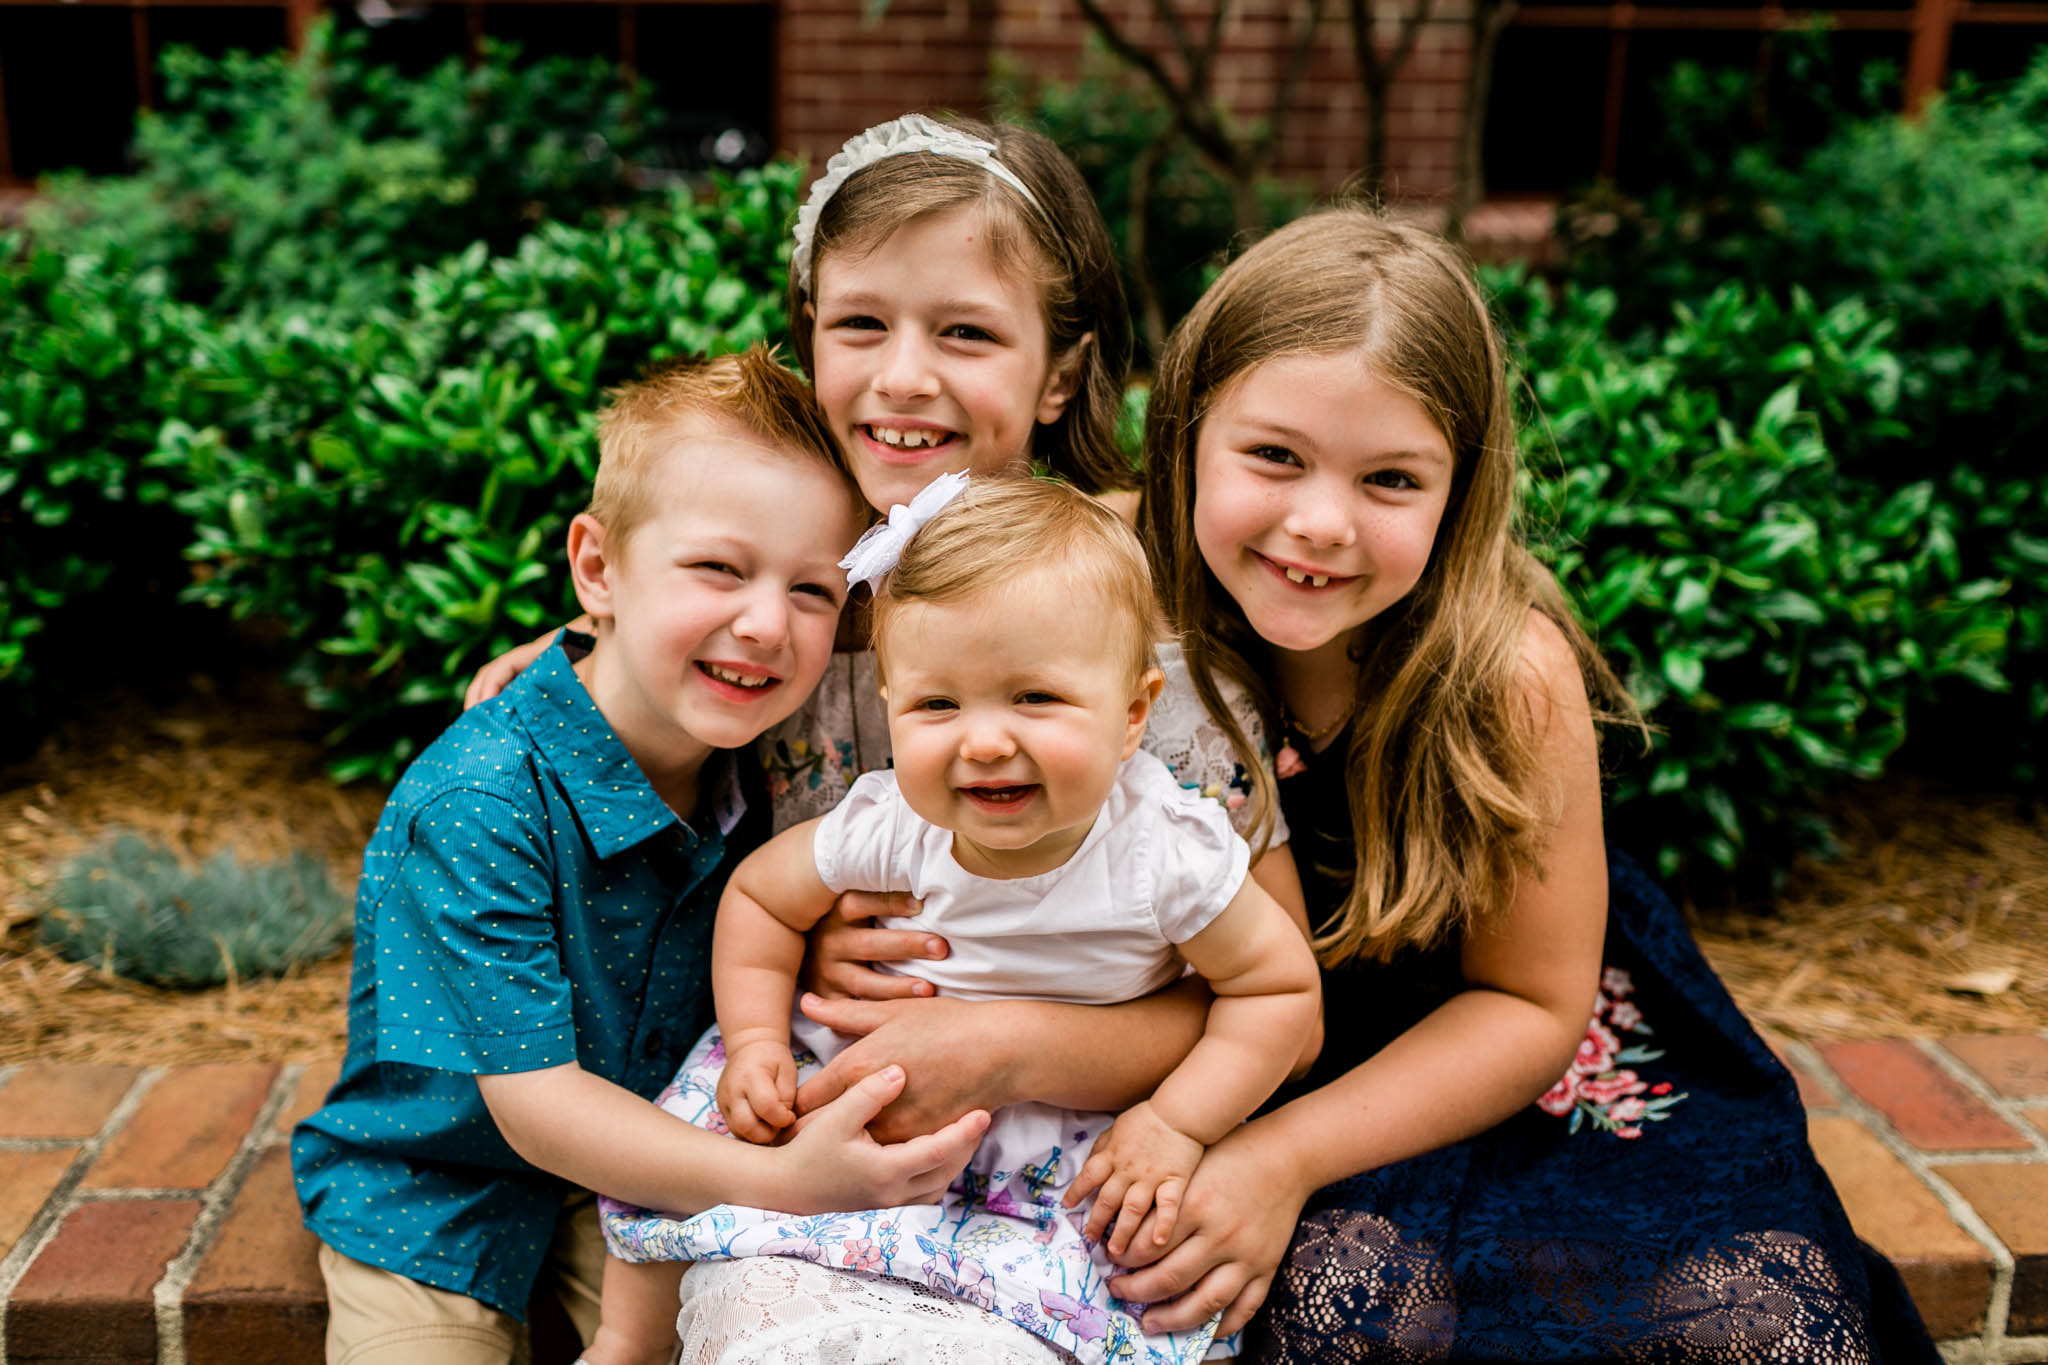 Durham Family Photographer | By G. Lin Photography | Beautiful sibling portrait outdoors at American Tobacco Campus